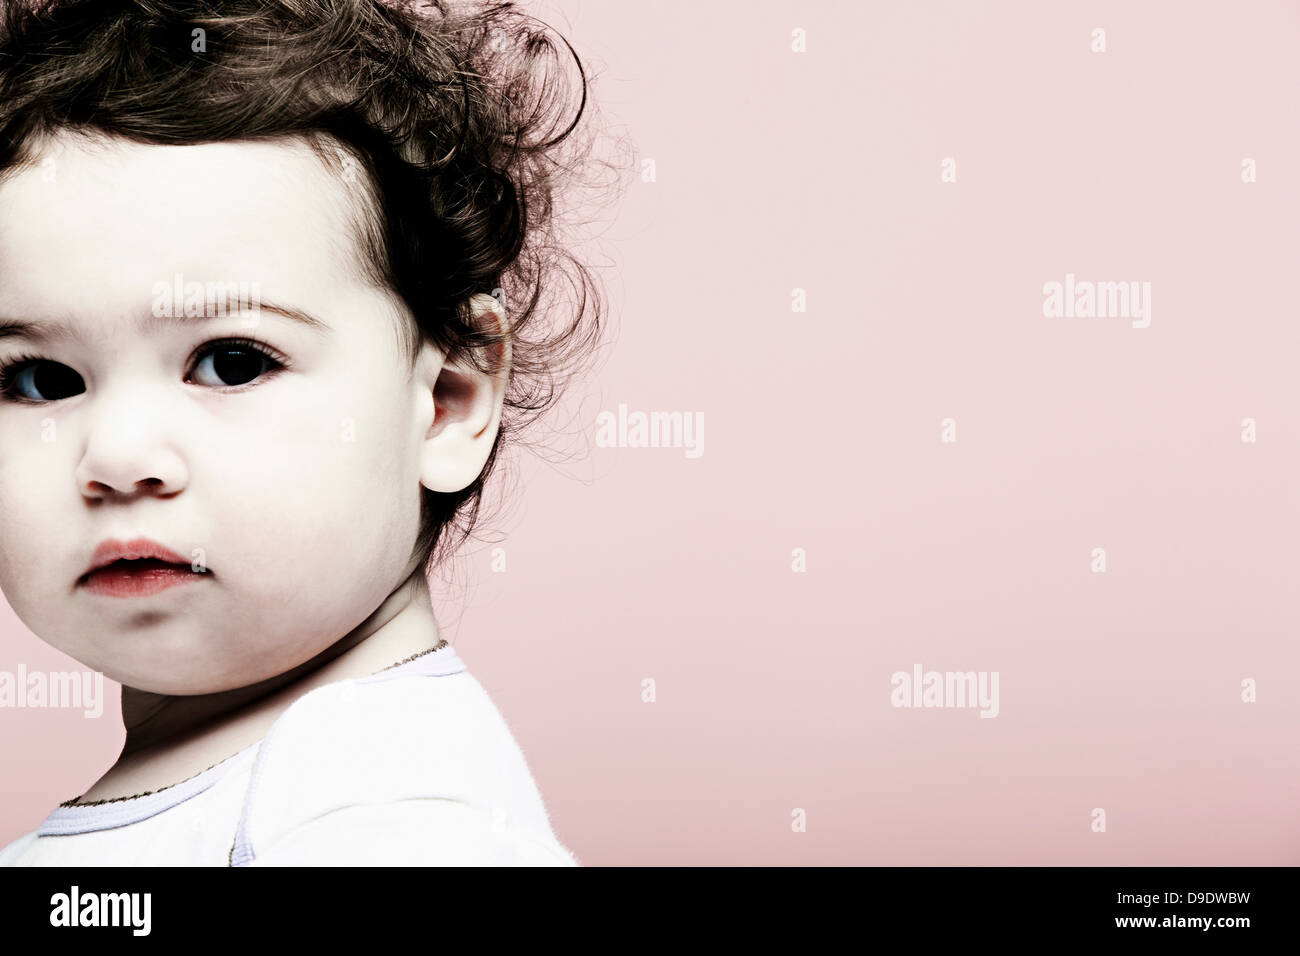 Portrait of baby girl against pink background - Stock Image